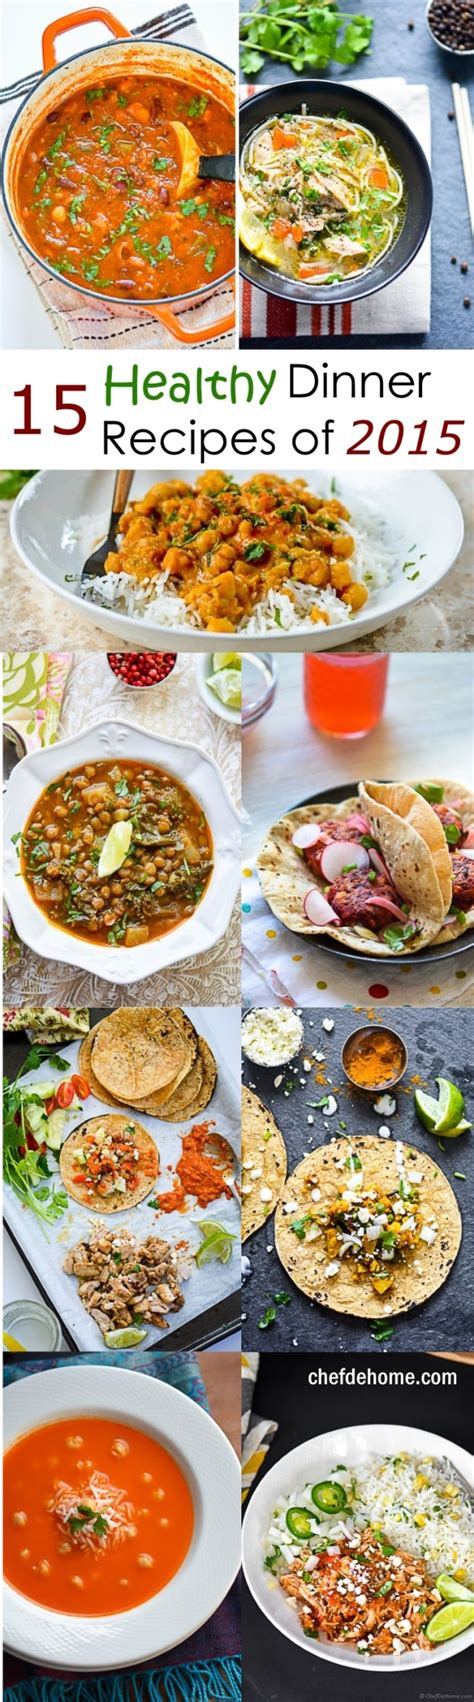 new year meal recipes 15 top healthy dinner recipes for new year meals